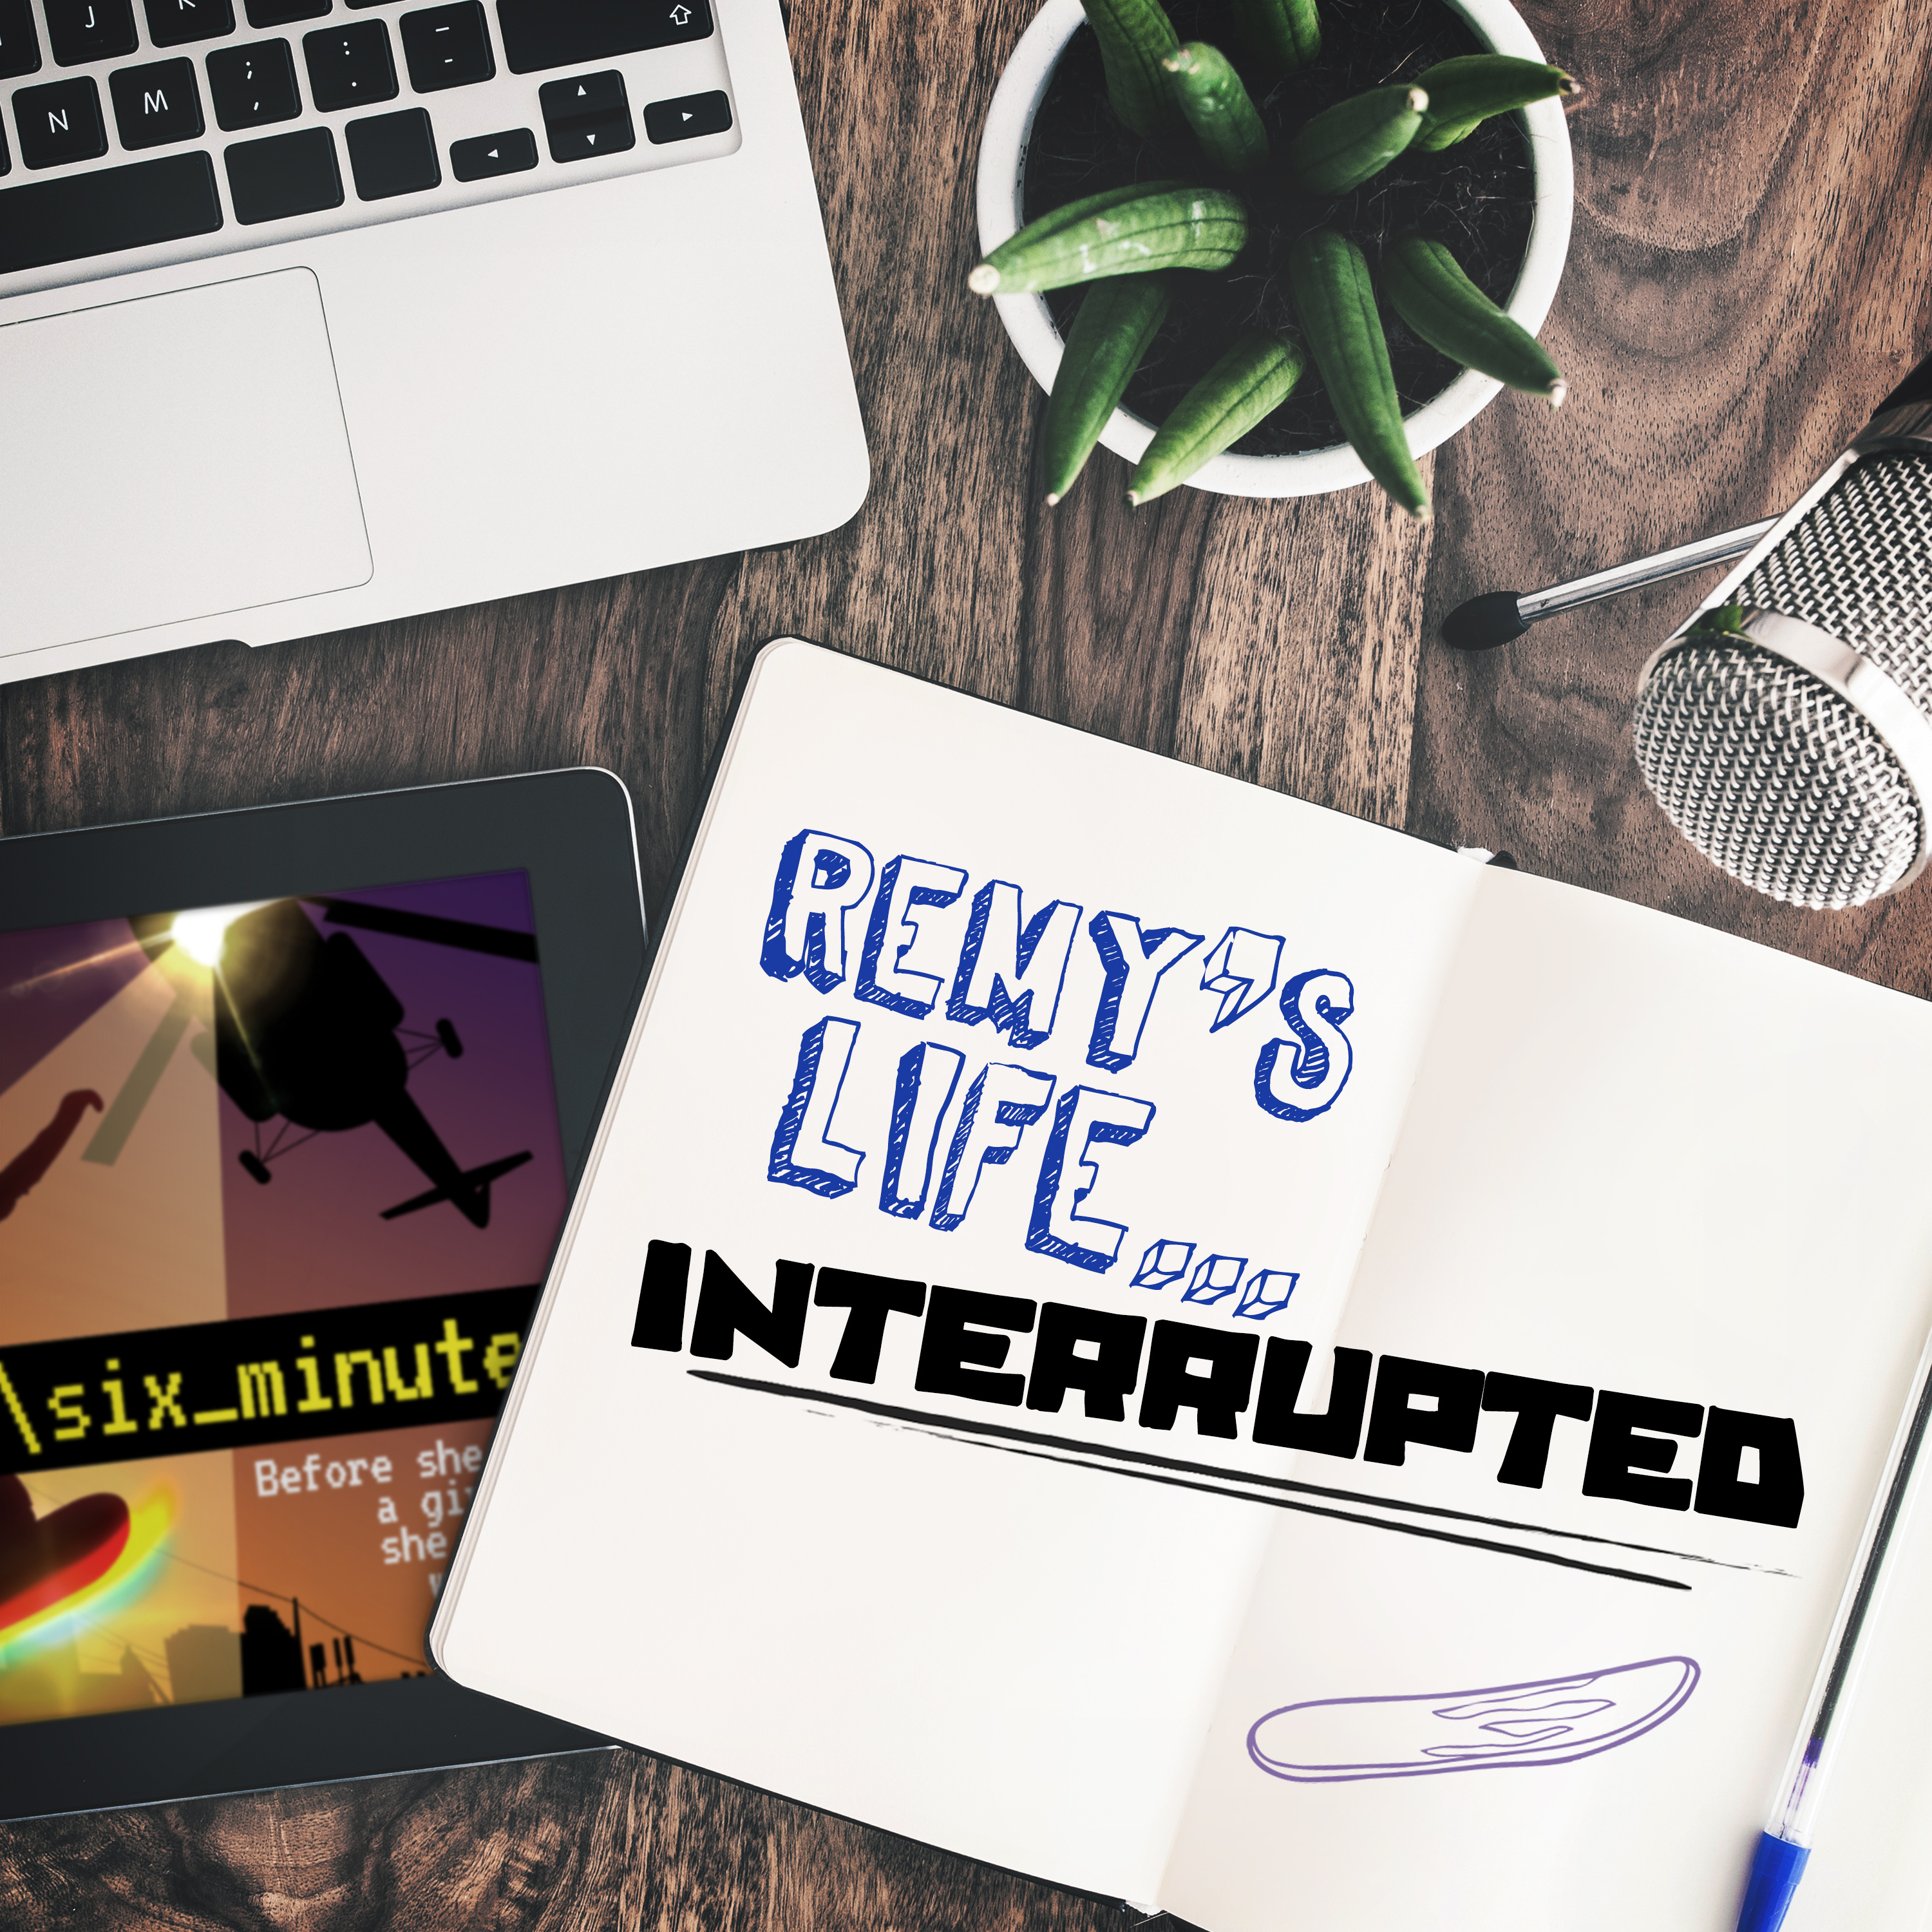 Remy's Life Interrupted: EP74